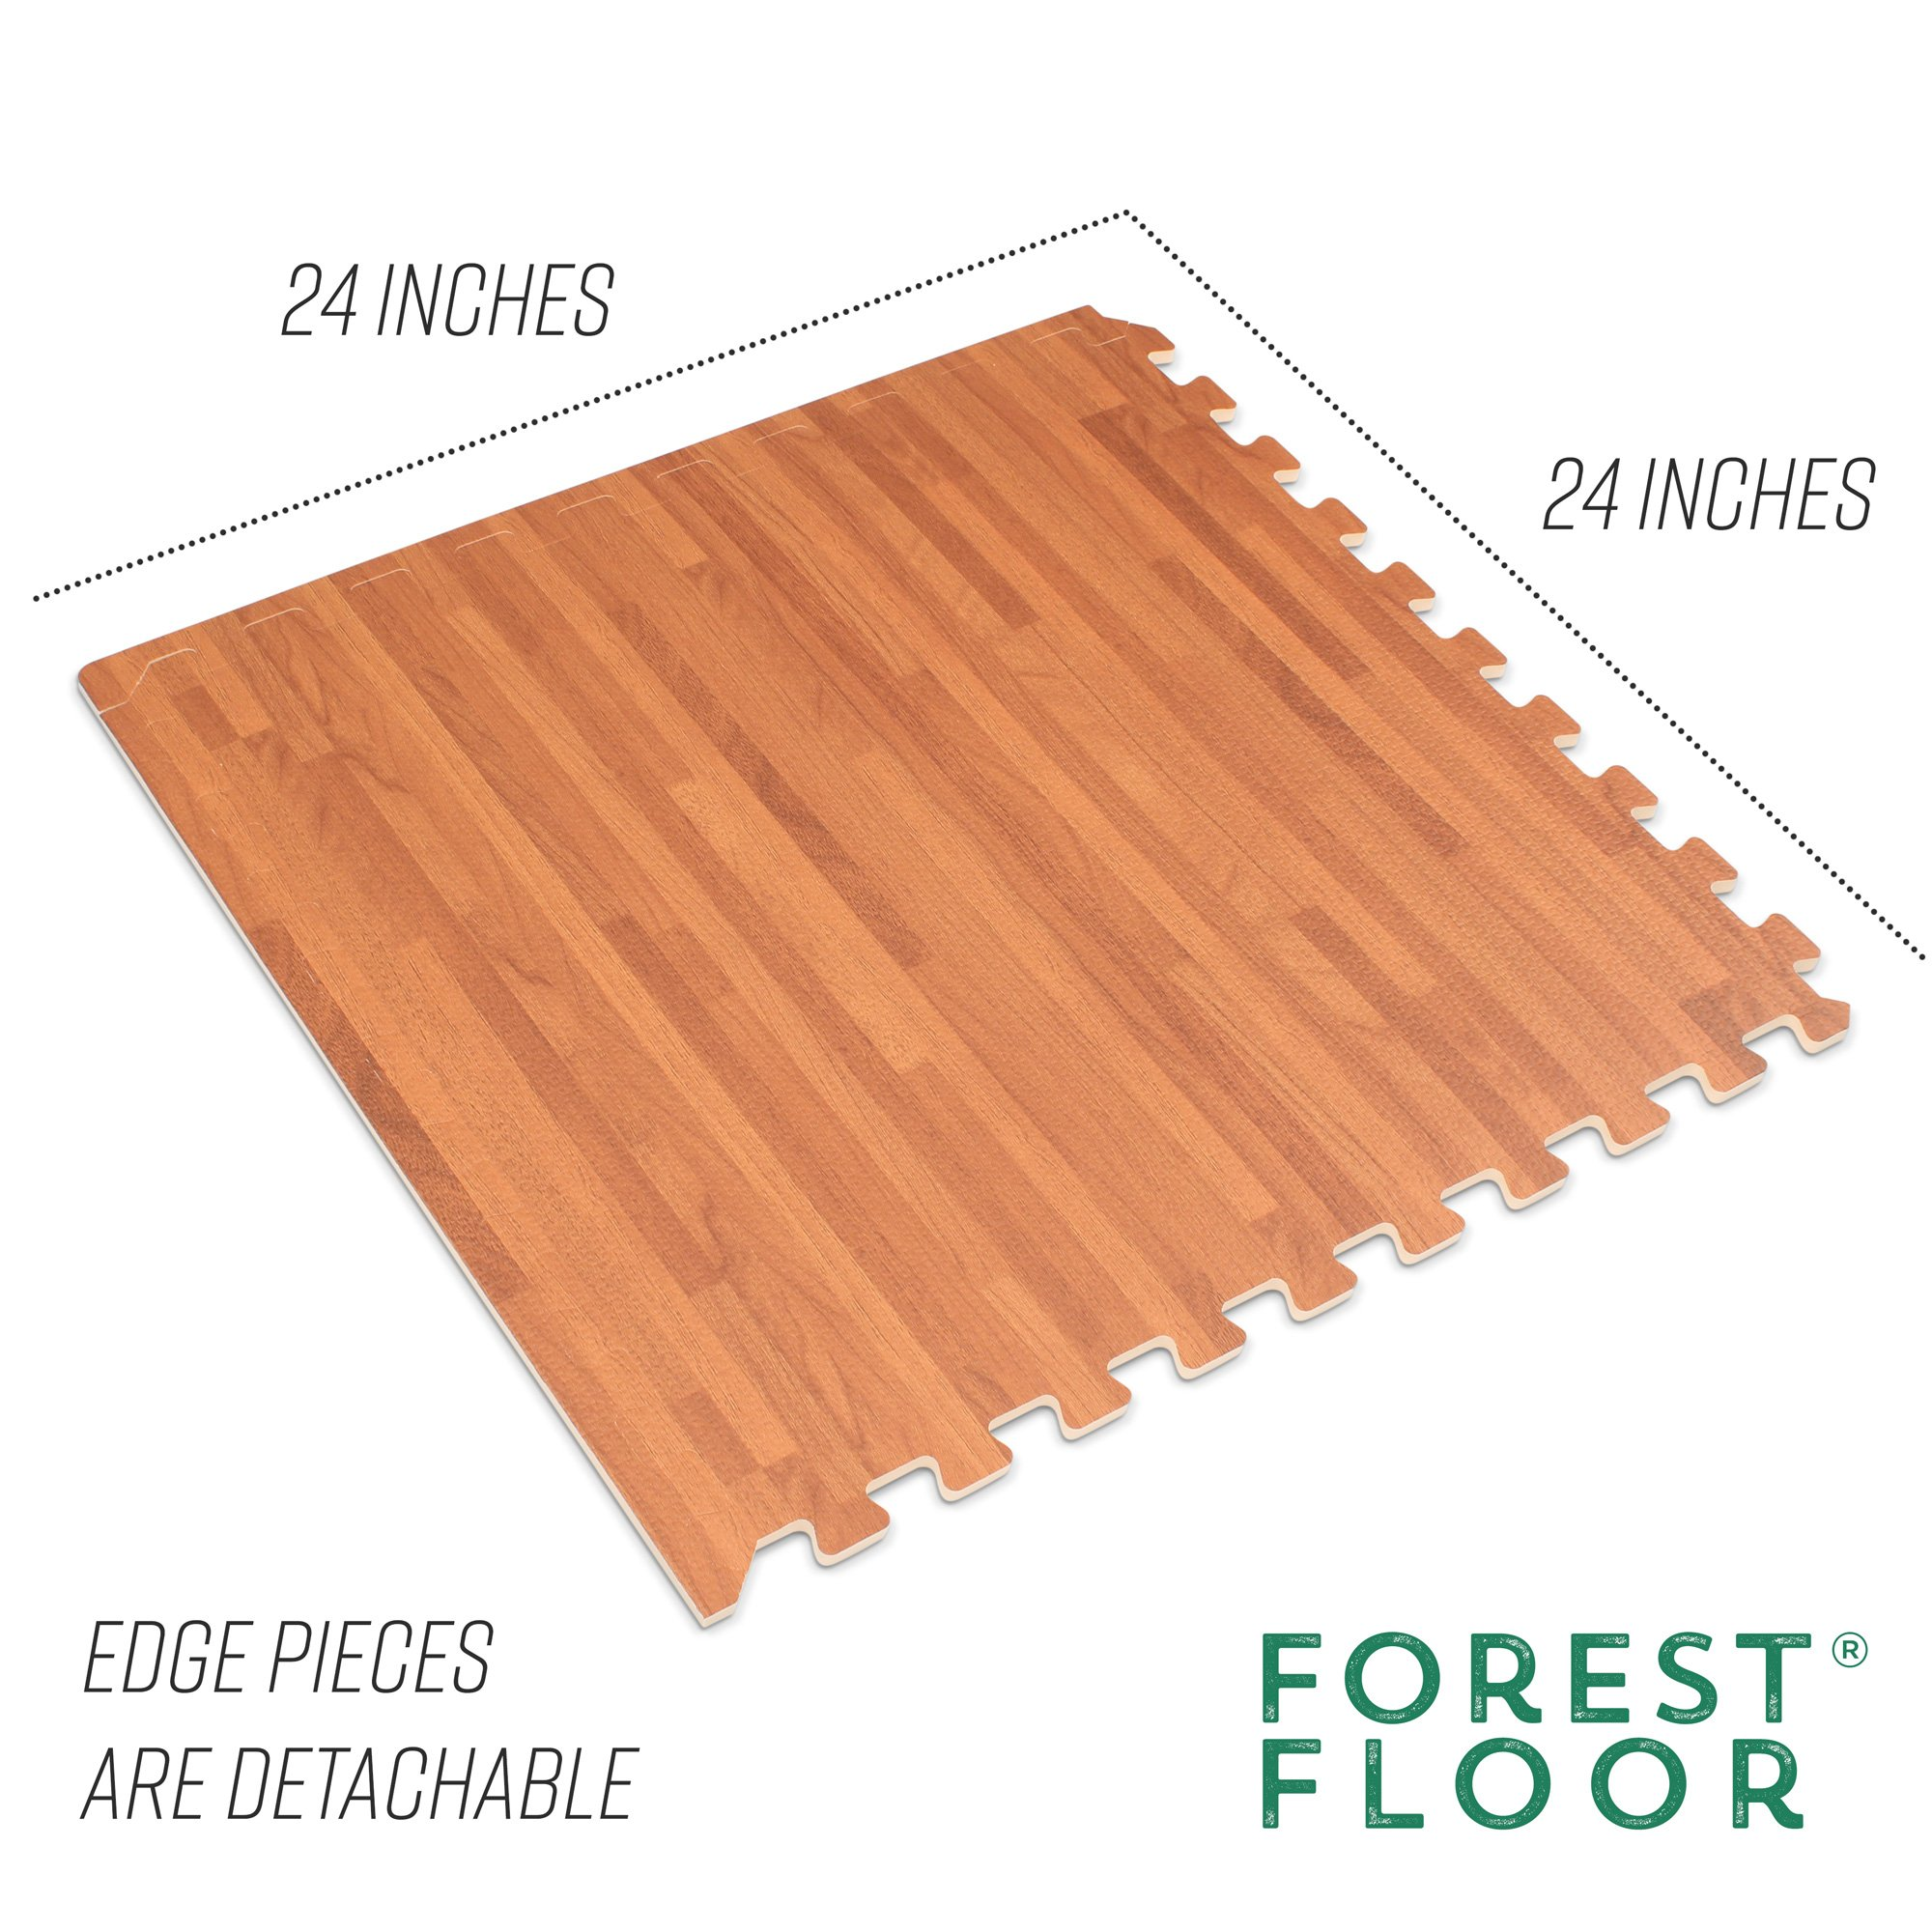 Forest Floor 3/8'' Thick Printed Wood Grain Interlocking Foam Floor Mats, 16 Sq Ft (4 Tiles), Mahogany by Forest Floor (Image #4)